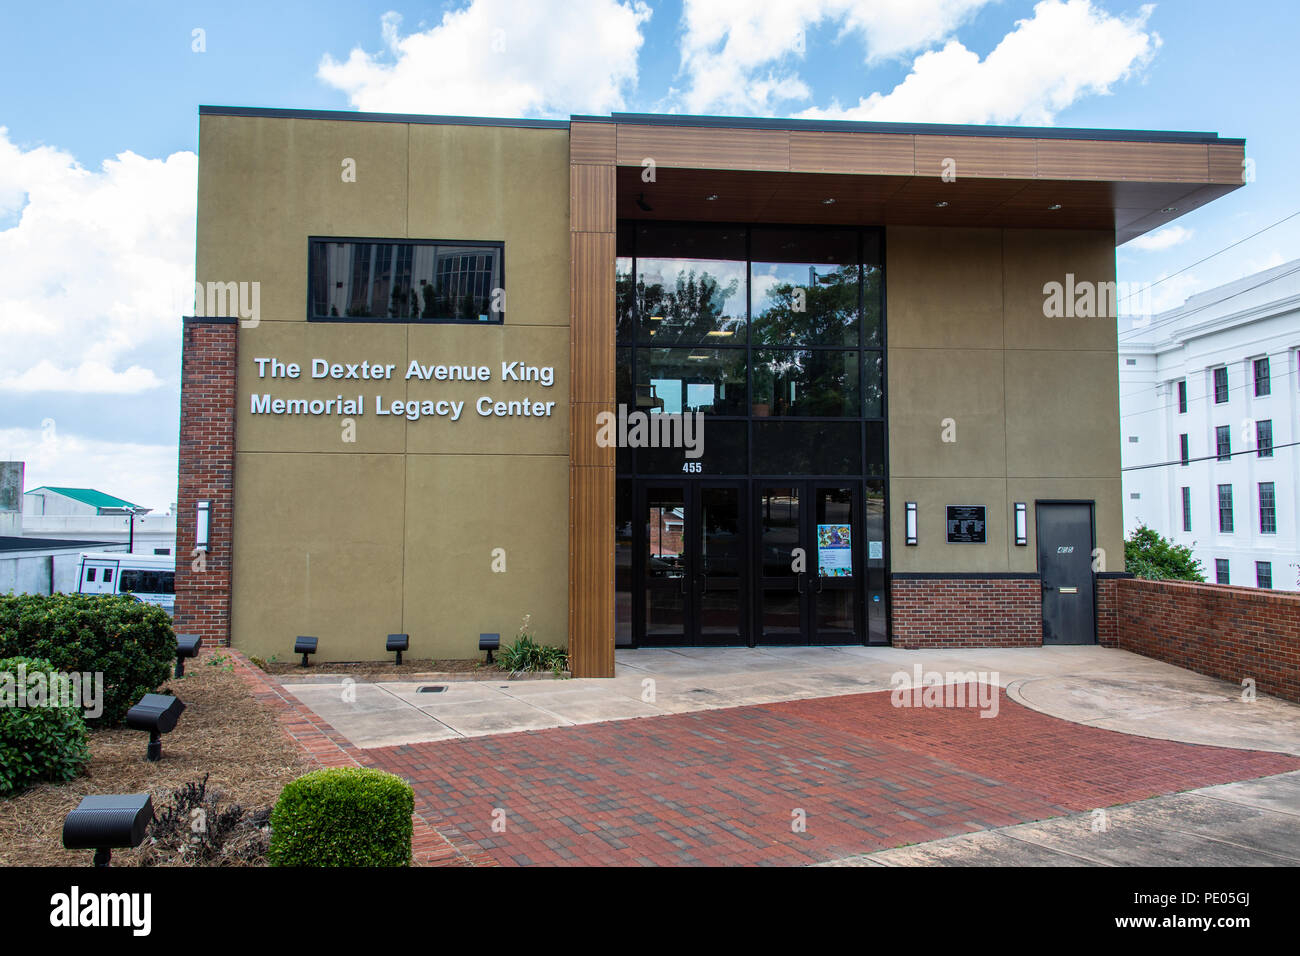 The Dexter Avenue King Memorial Legacy Center, Montgomery, Alabama, USA - Stock Image